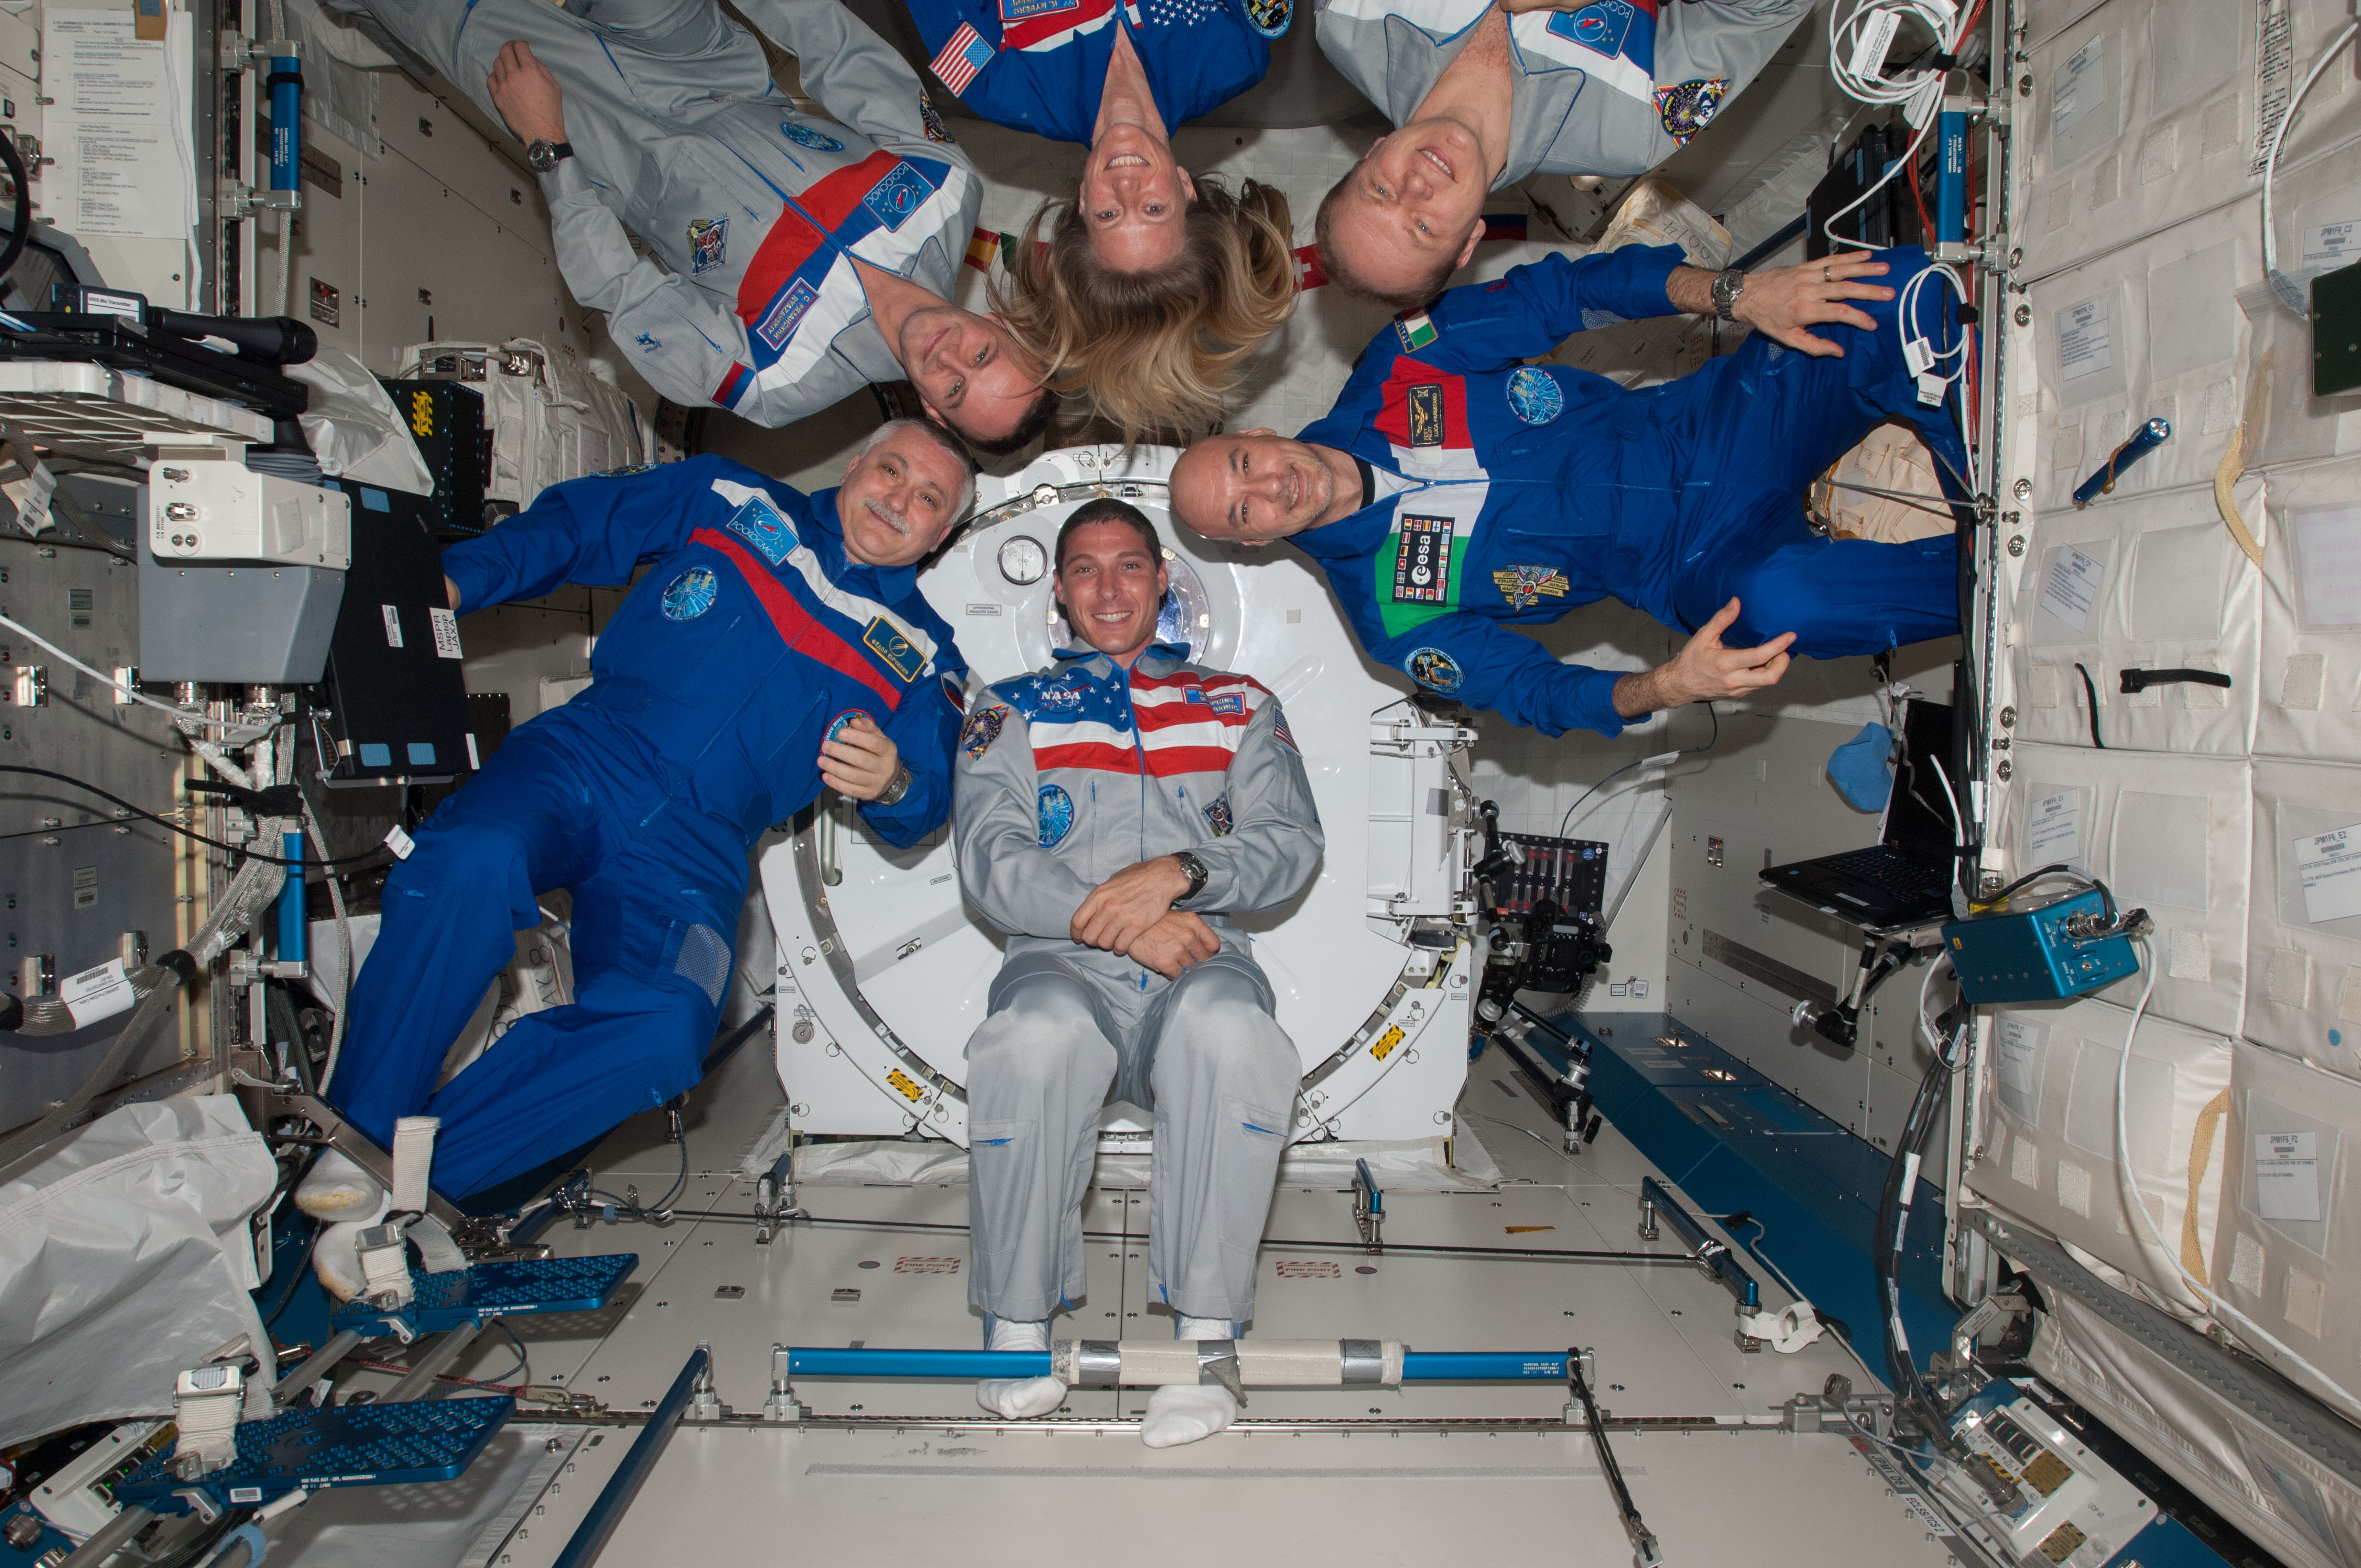 iss expedition 37 -#main